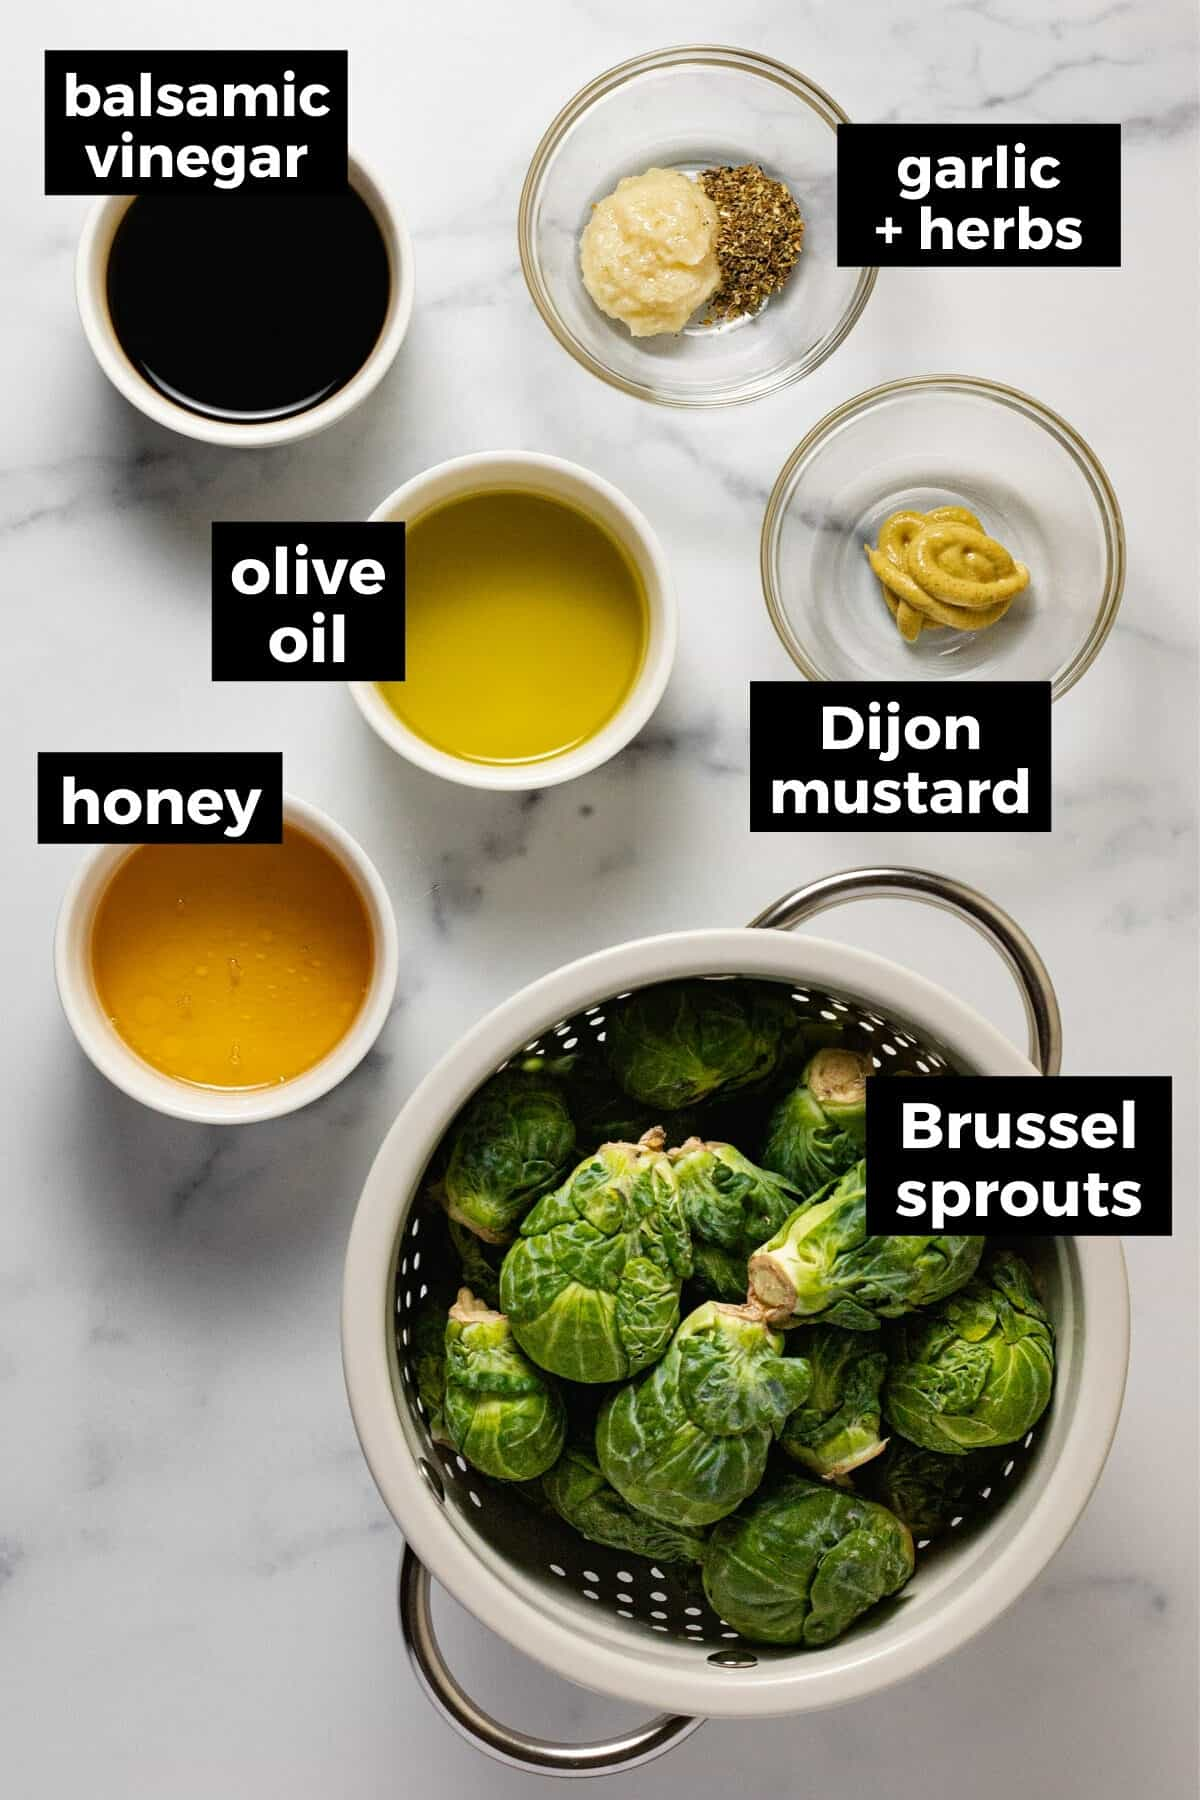 White marble counter top with ingredients to make balsamic glazed Brussel sprouts